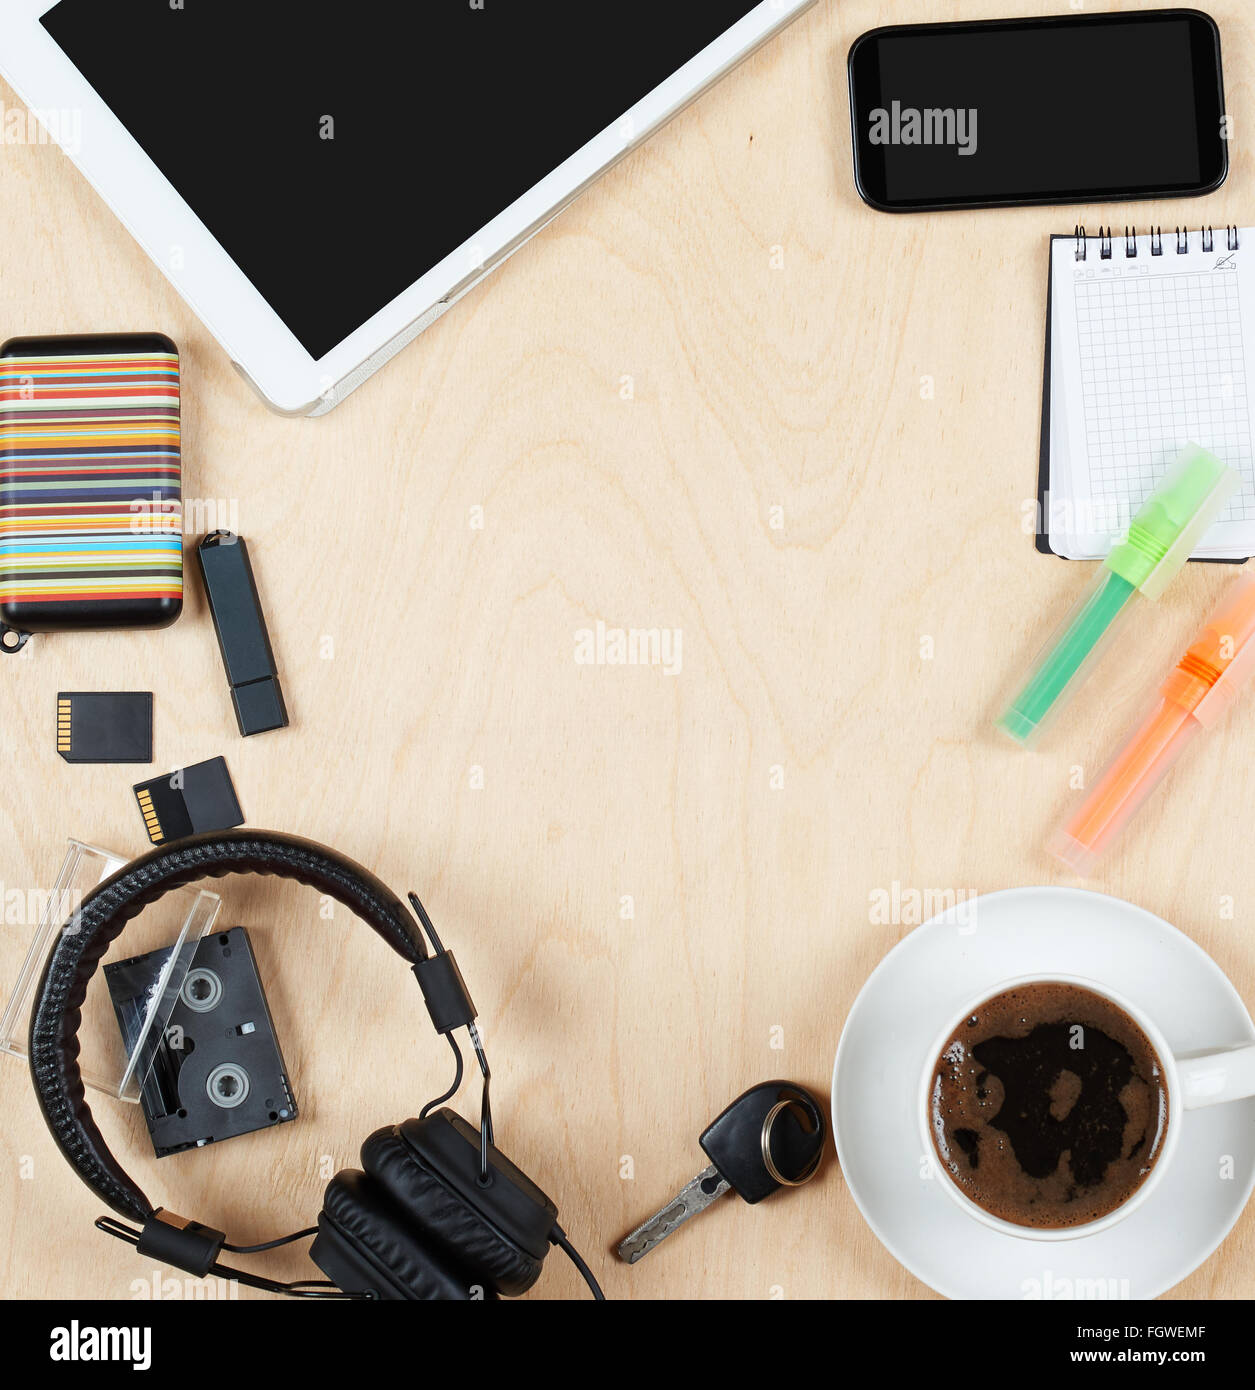 Flat lay office tools and supplies, tablet computer,cards, coffee and other stuff. Flat design and top view on desk Stock Photo